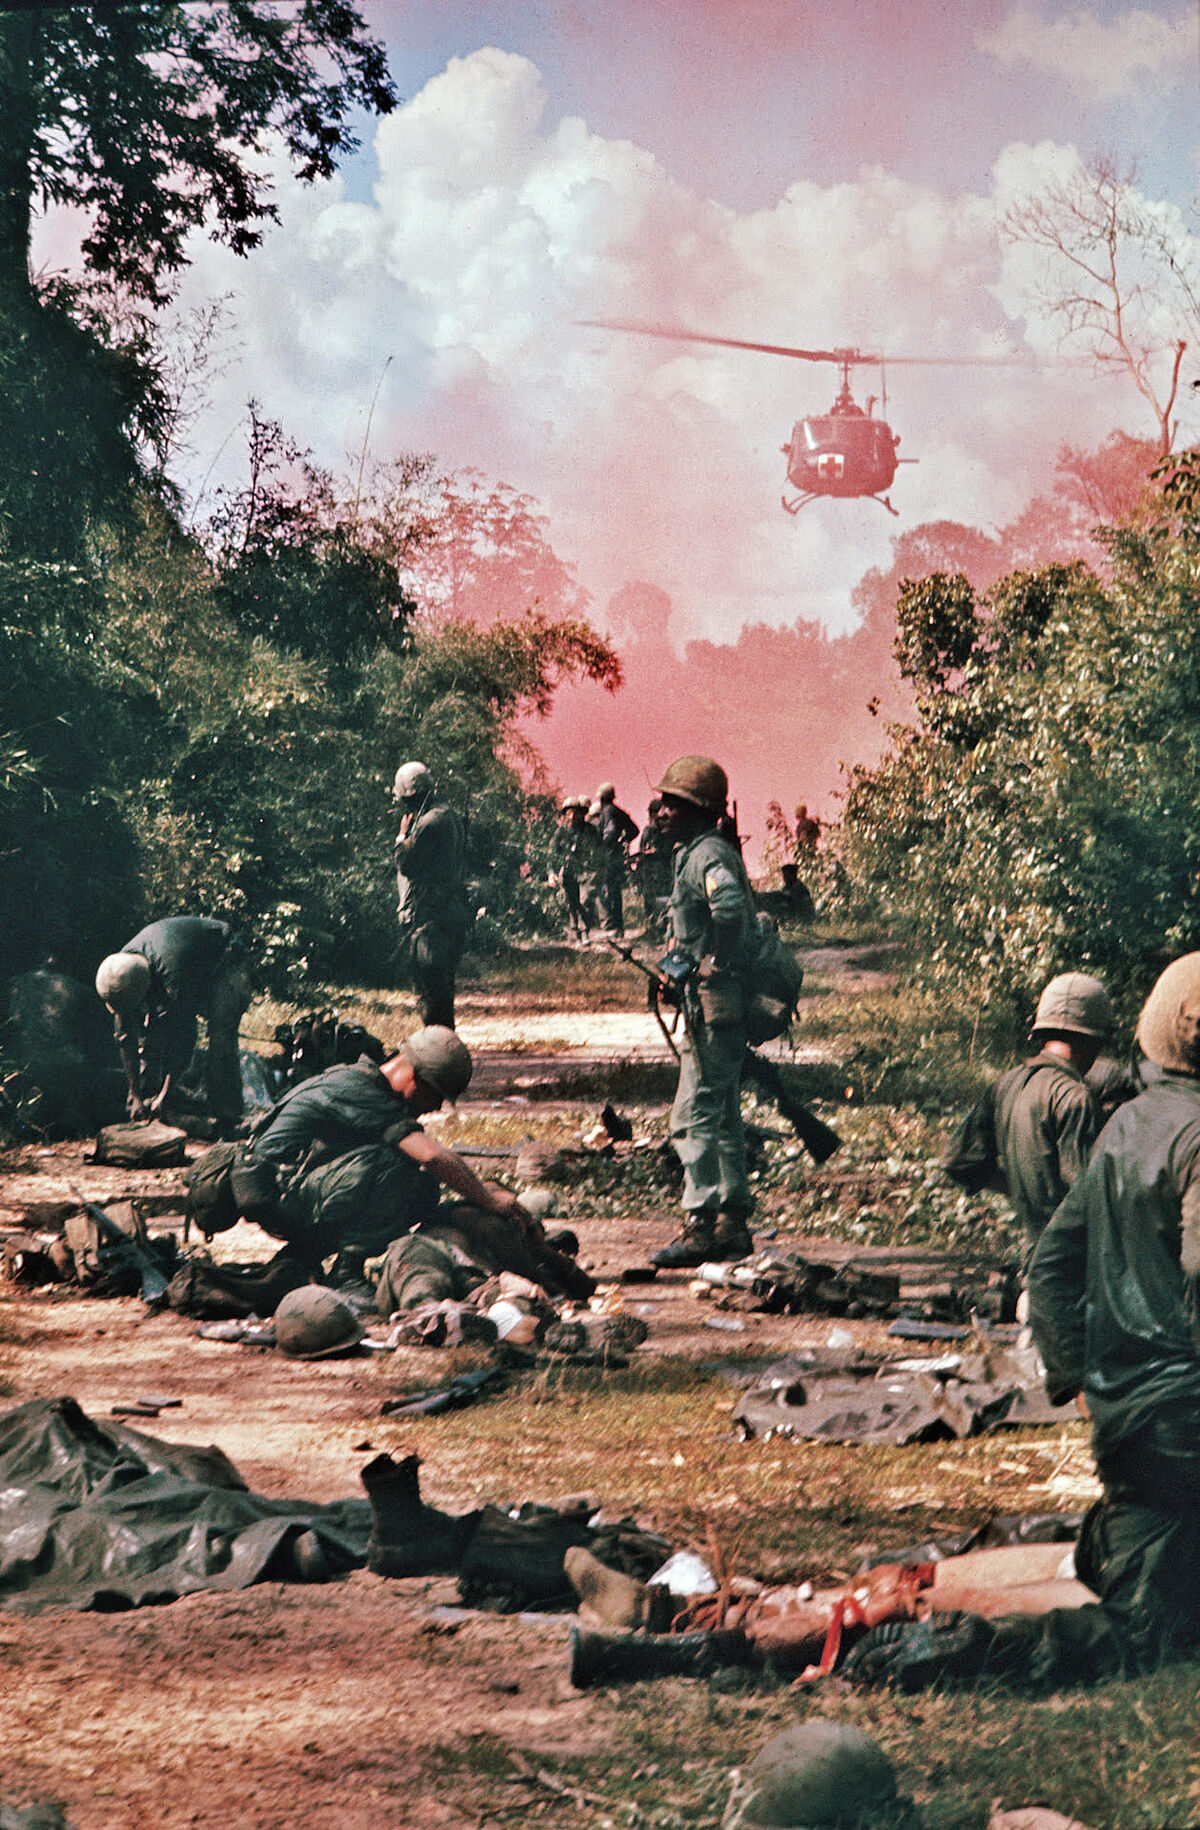 Tim Page, War Zone 'C'–Ambush of 173rd Airborne, 1965. Courtesy of the artist.